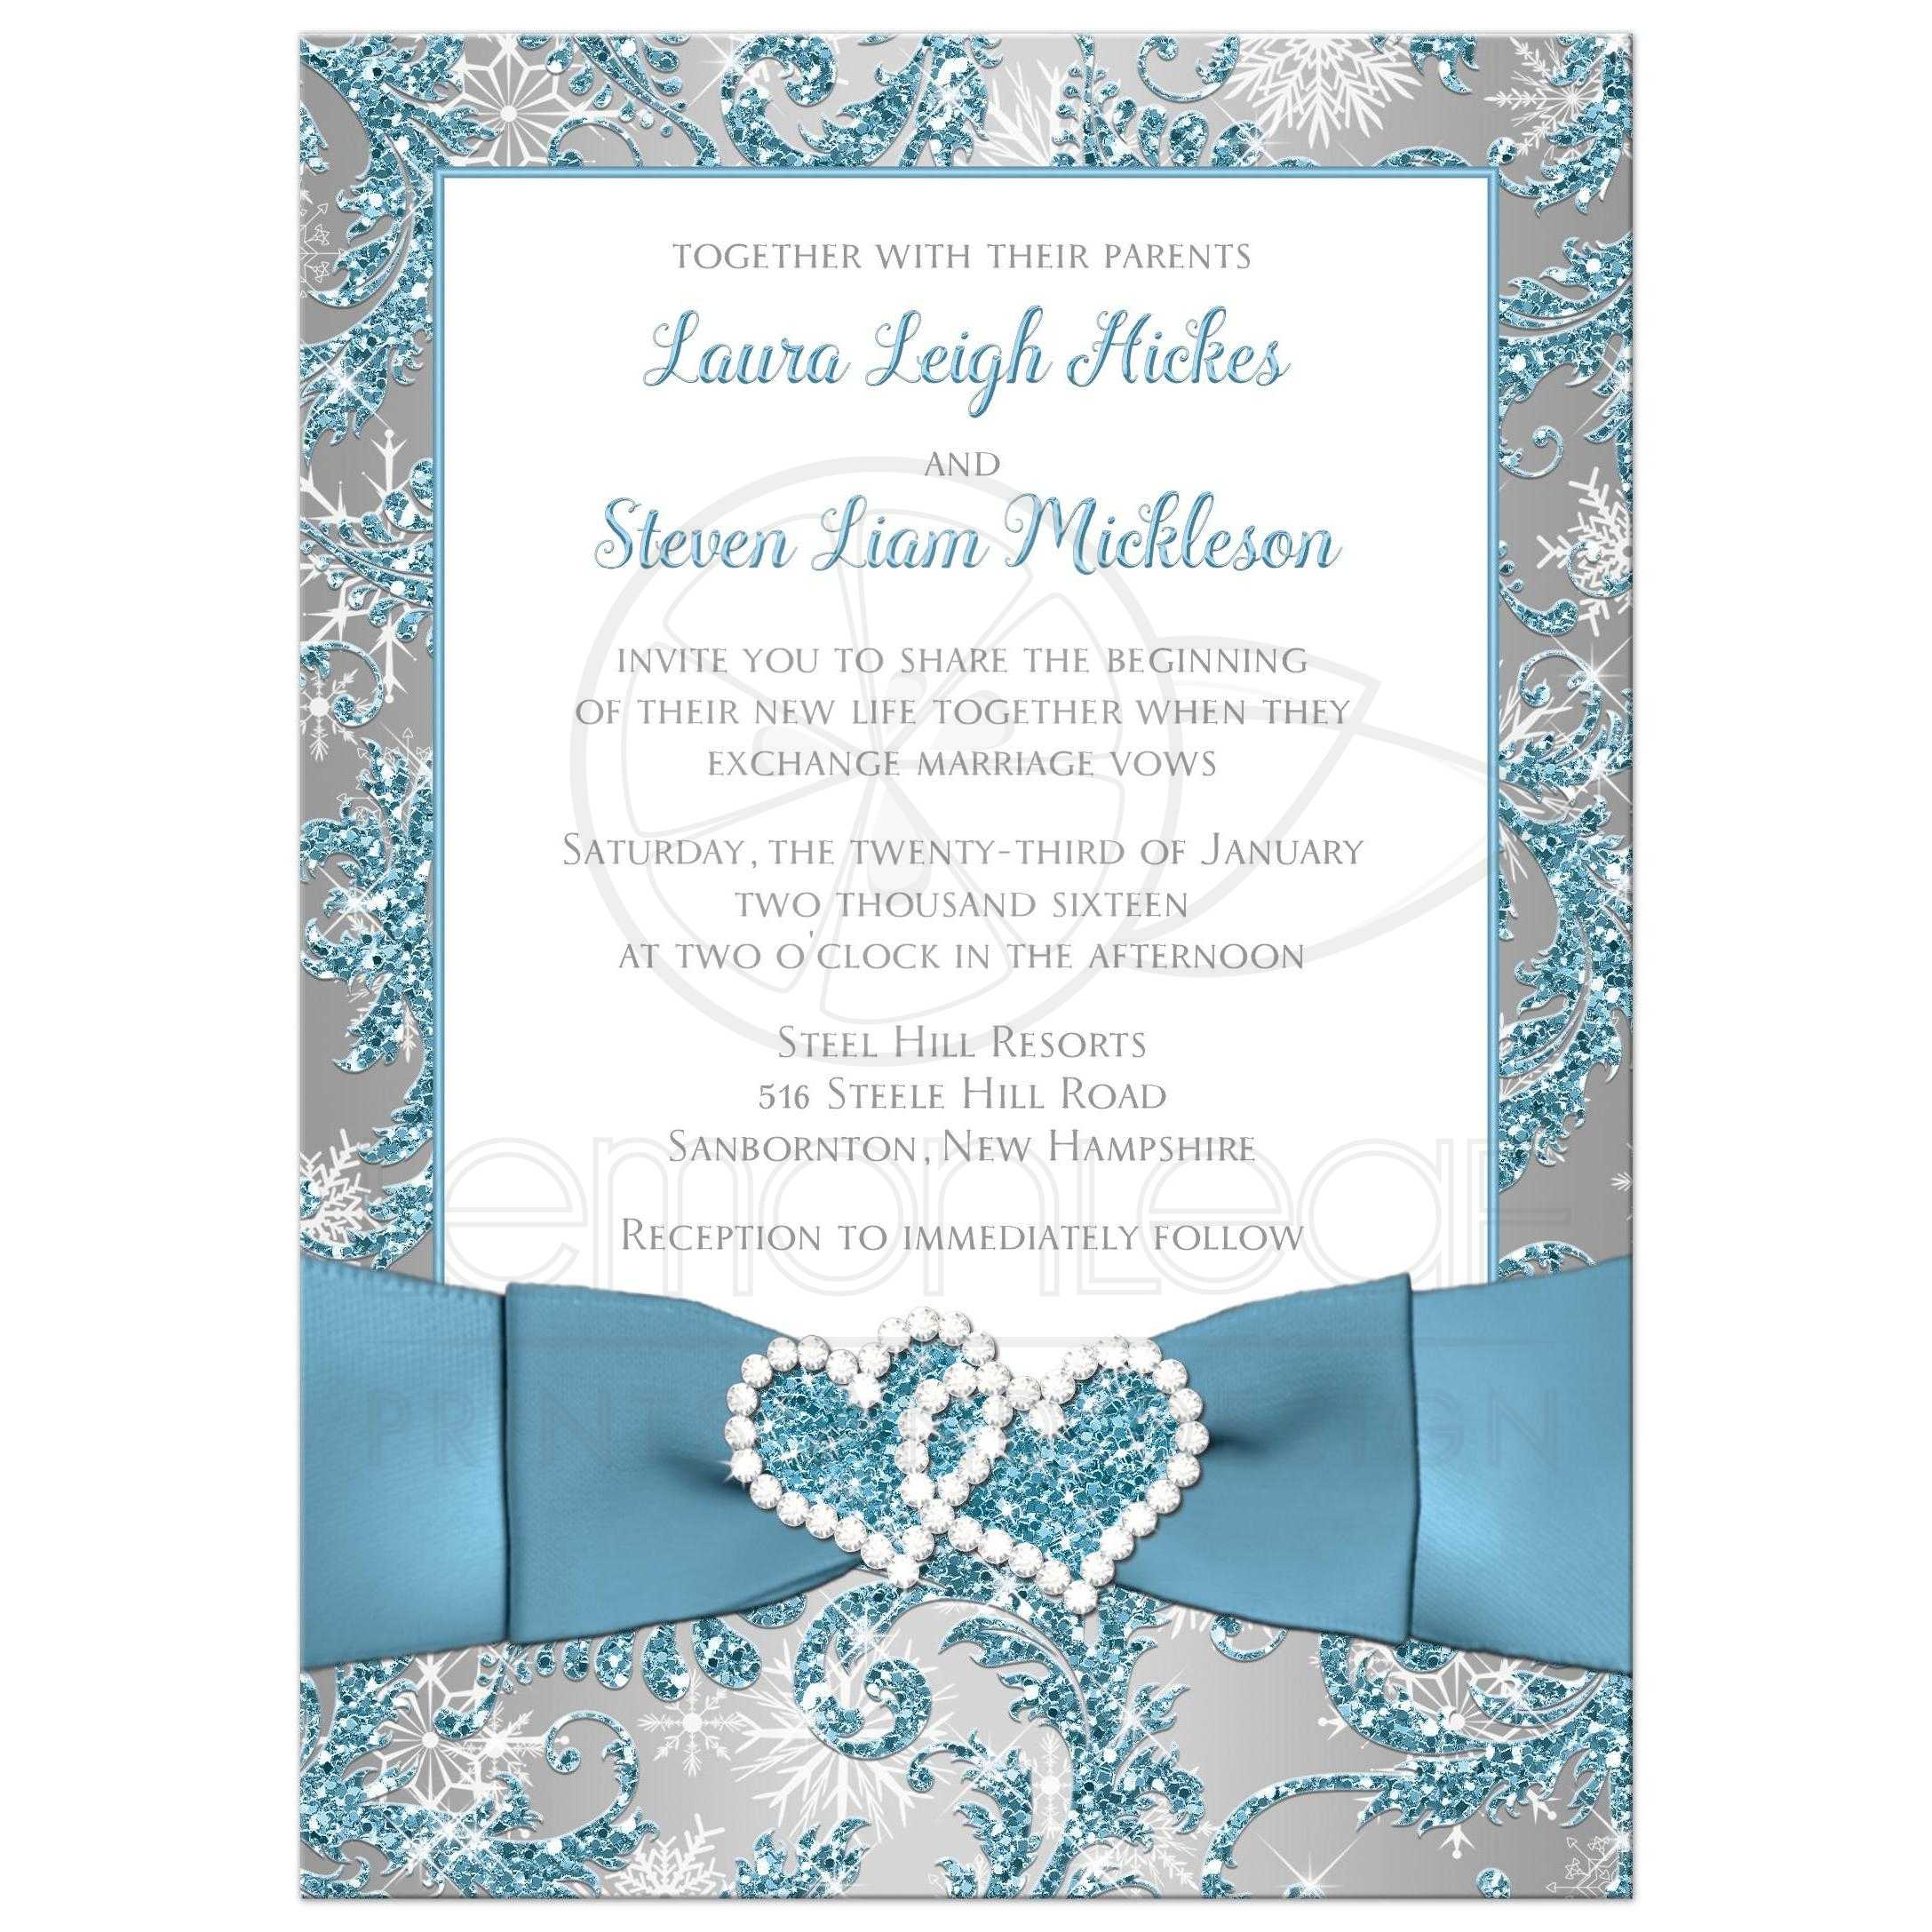 Tea Party Invitations Ideas with luxury invitation layout